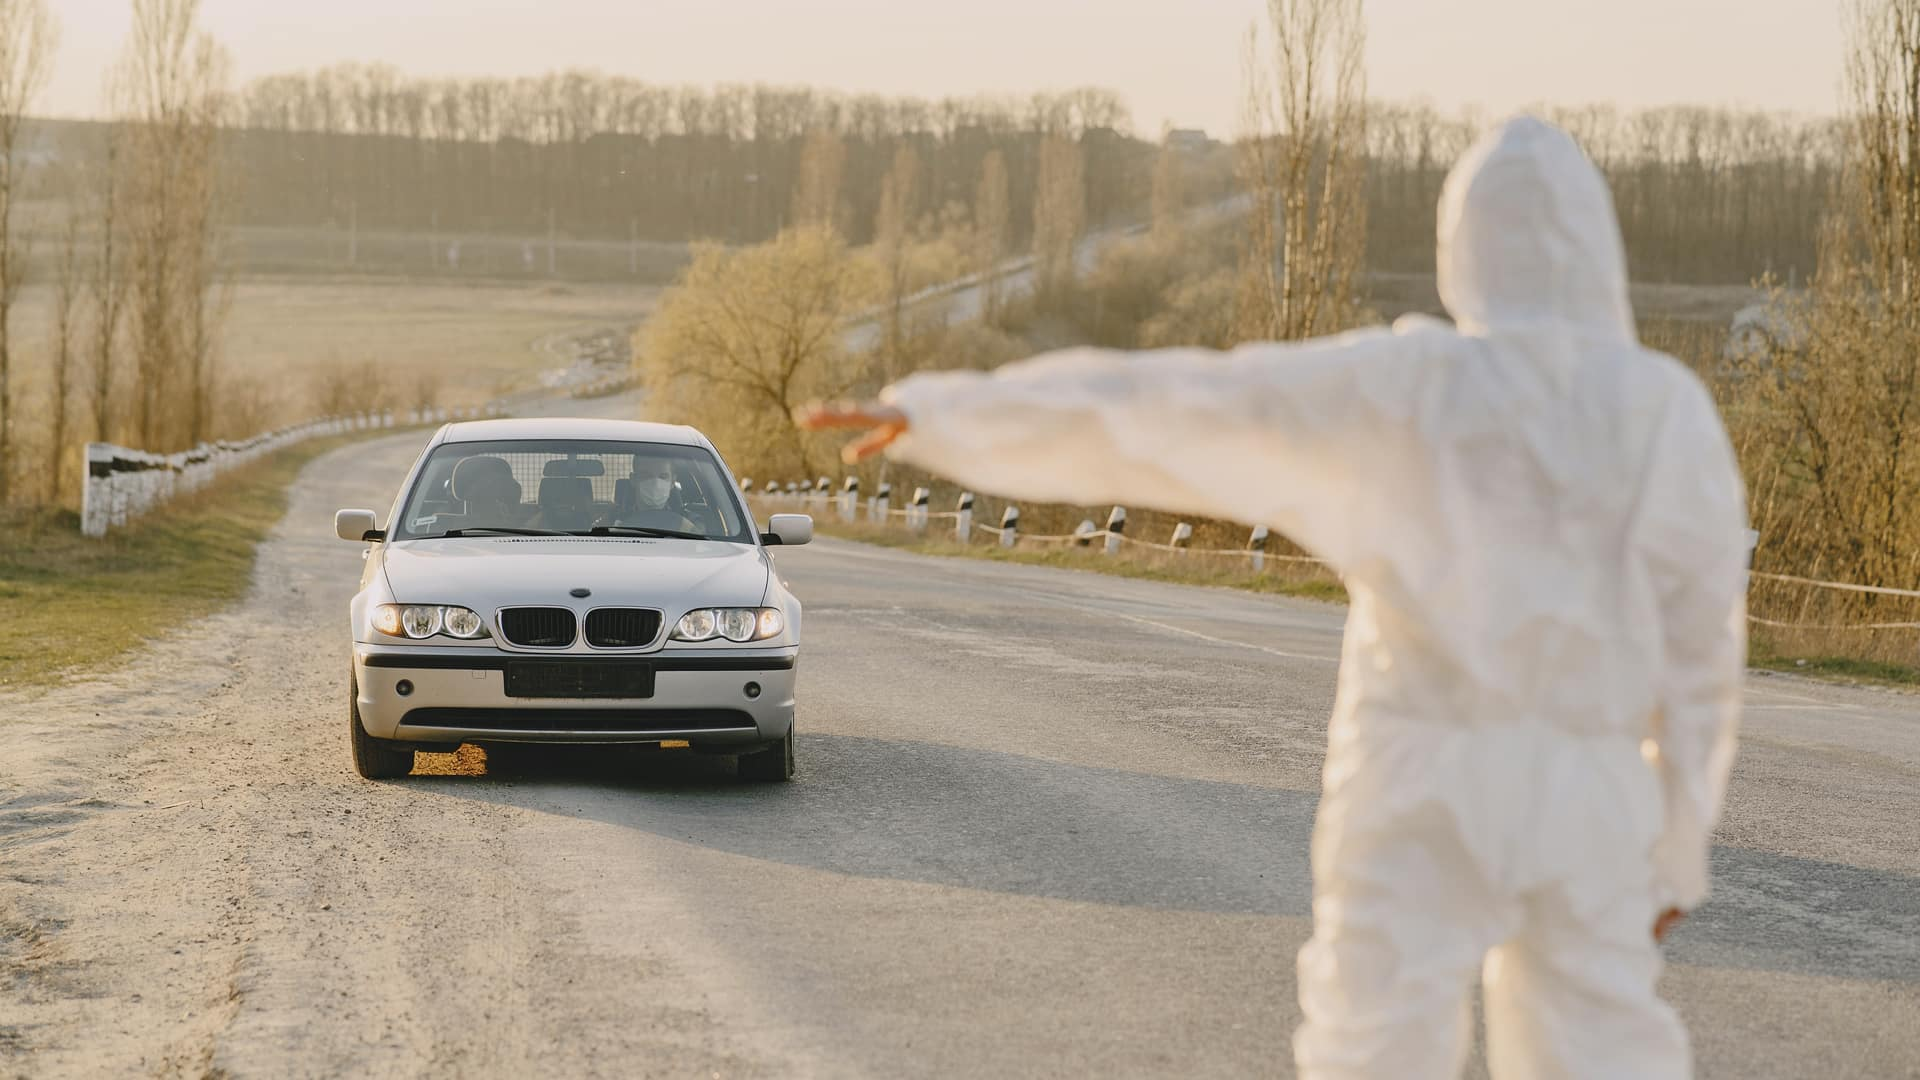 Photo of a man in a hazmat suit stopping a white BMW with a person wearing a mask.